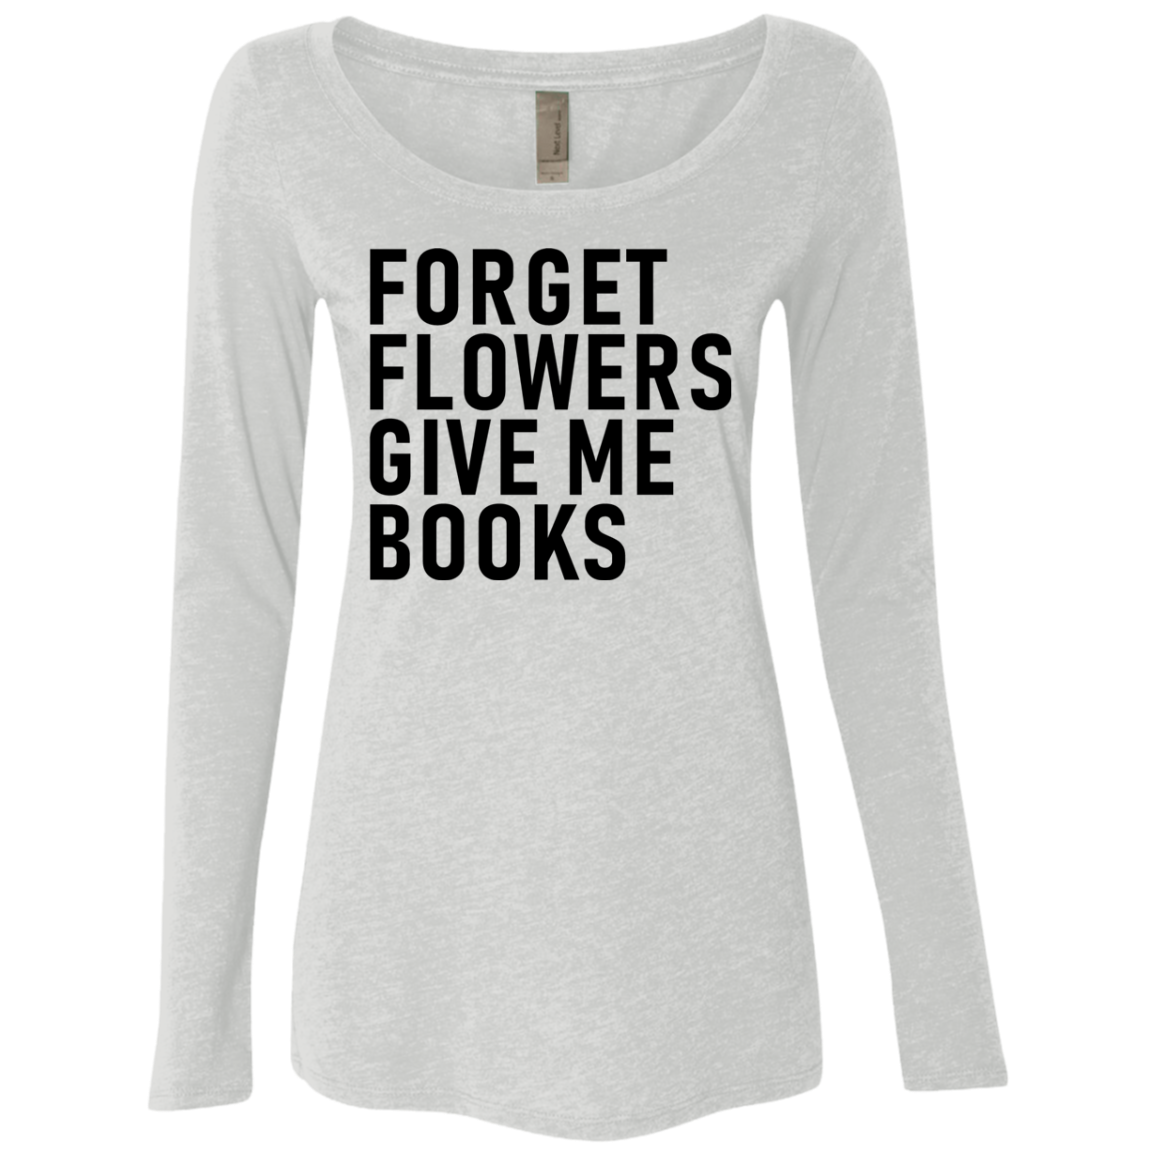 Forget Flowers Give Me Books Women's Long Sleeve Tee